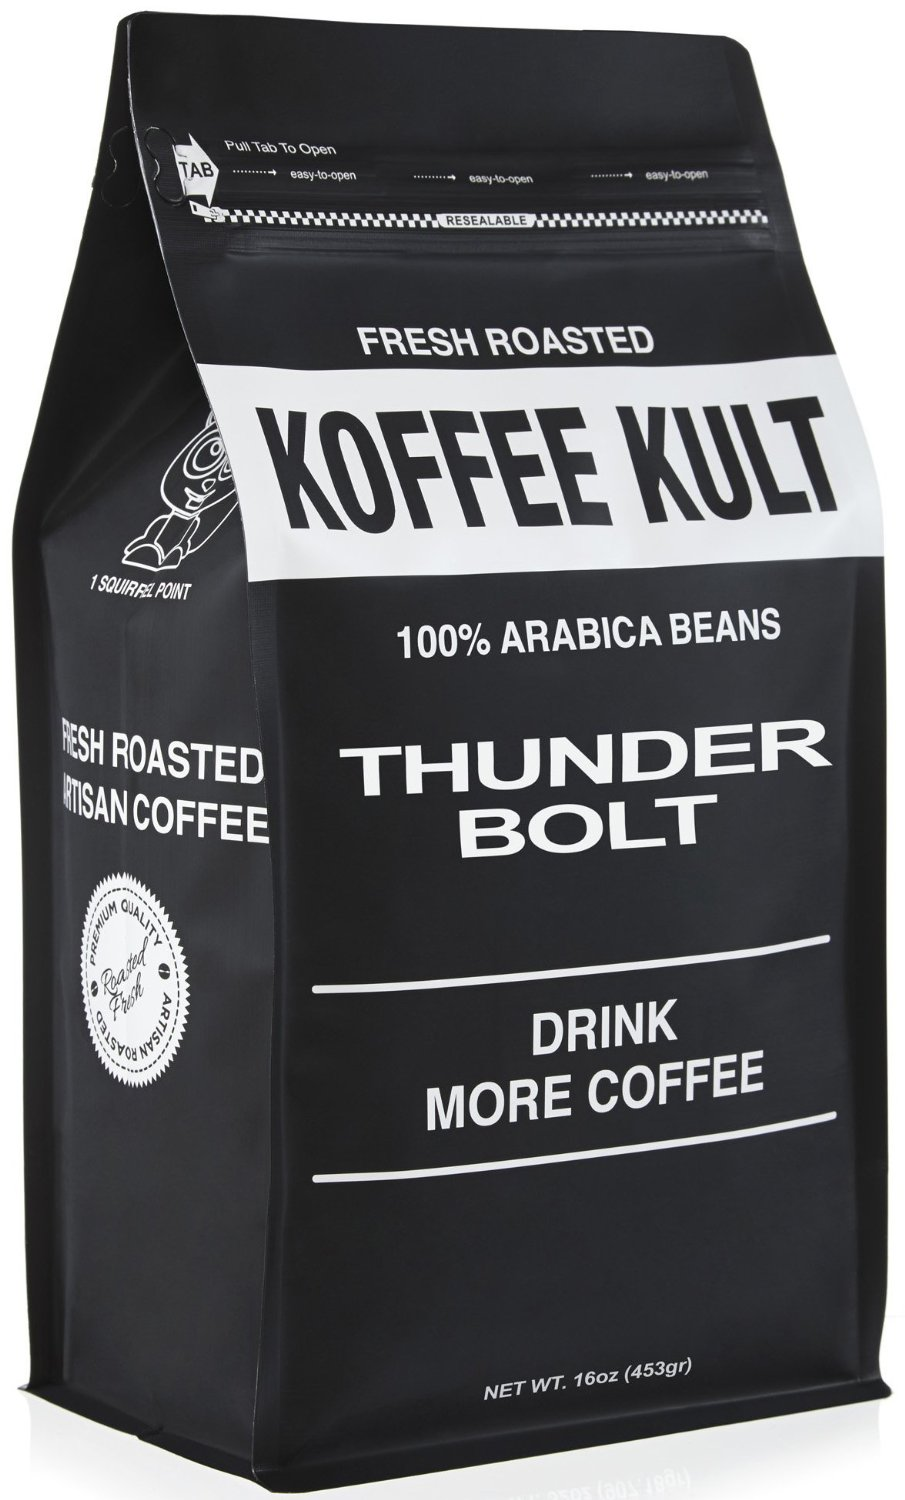 Thunder Bolt Coffee 1 Pound Ground French Roast Colombian Freshly Roasted Restaurant Quality Gourmet Coffee - Ideal for French Press, Drip Coffee from Koffee Kult